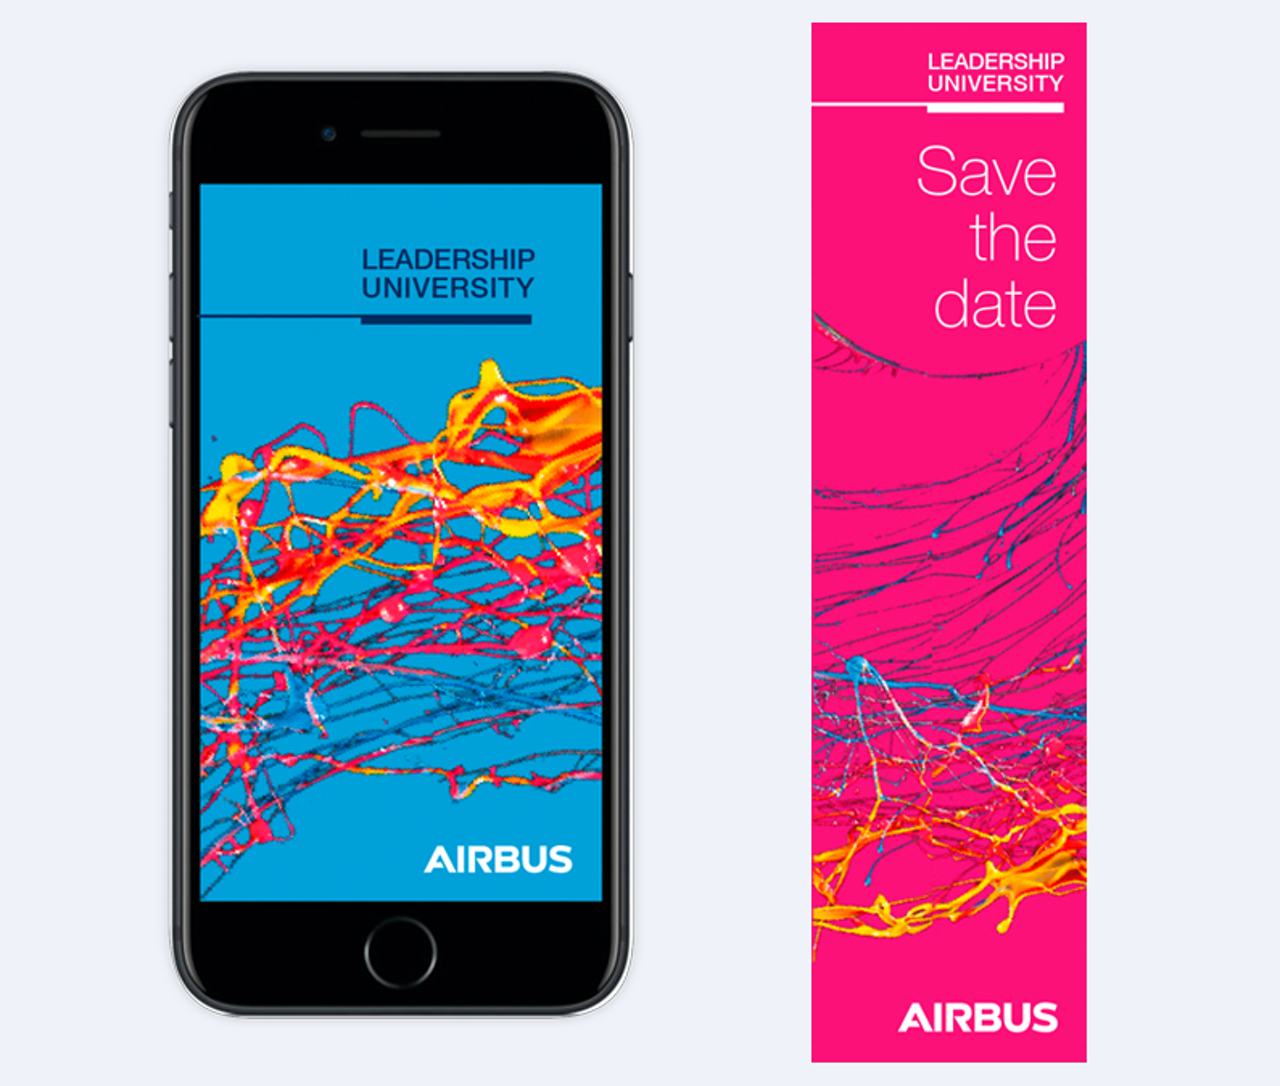 Airbus Leadership University Double Lined Descriptor